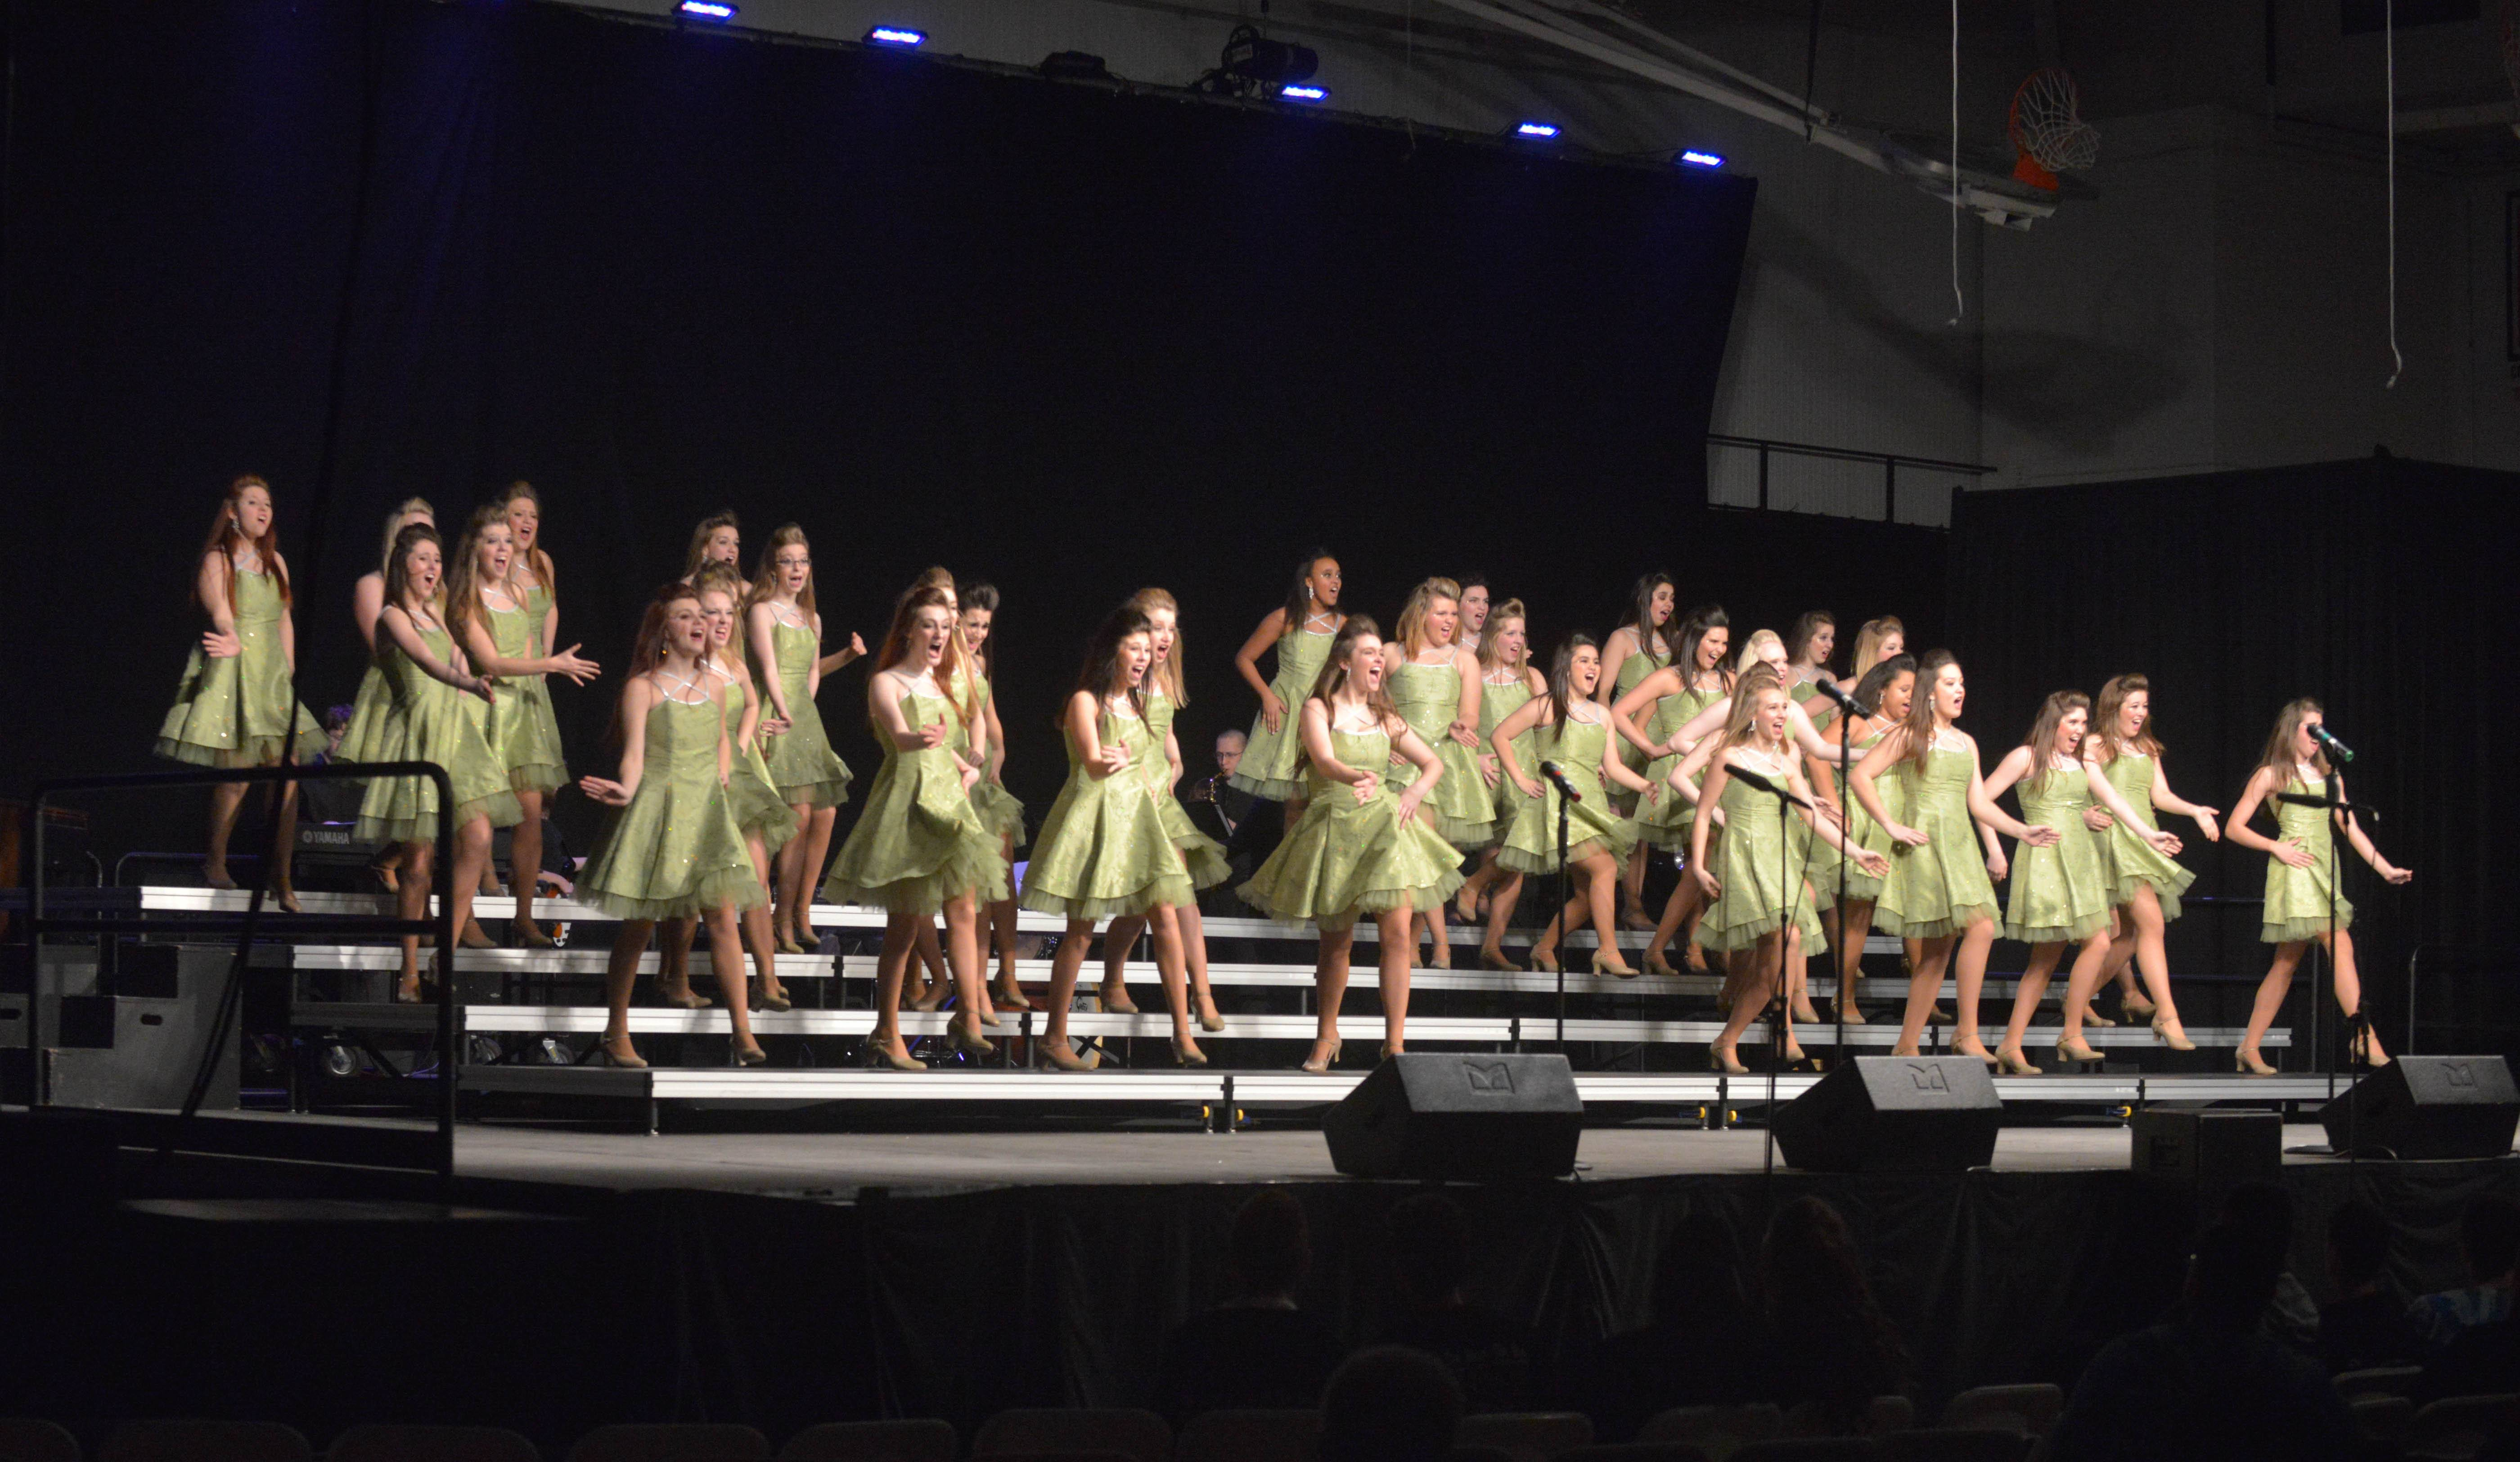 Indiana's New Prairie High School took part in the annual Choral Classic Invitational Saturday in Wheaton. Thirty middle schools and high schools from 11 states participated in the two-day show choir and vocal performance competition.